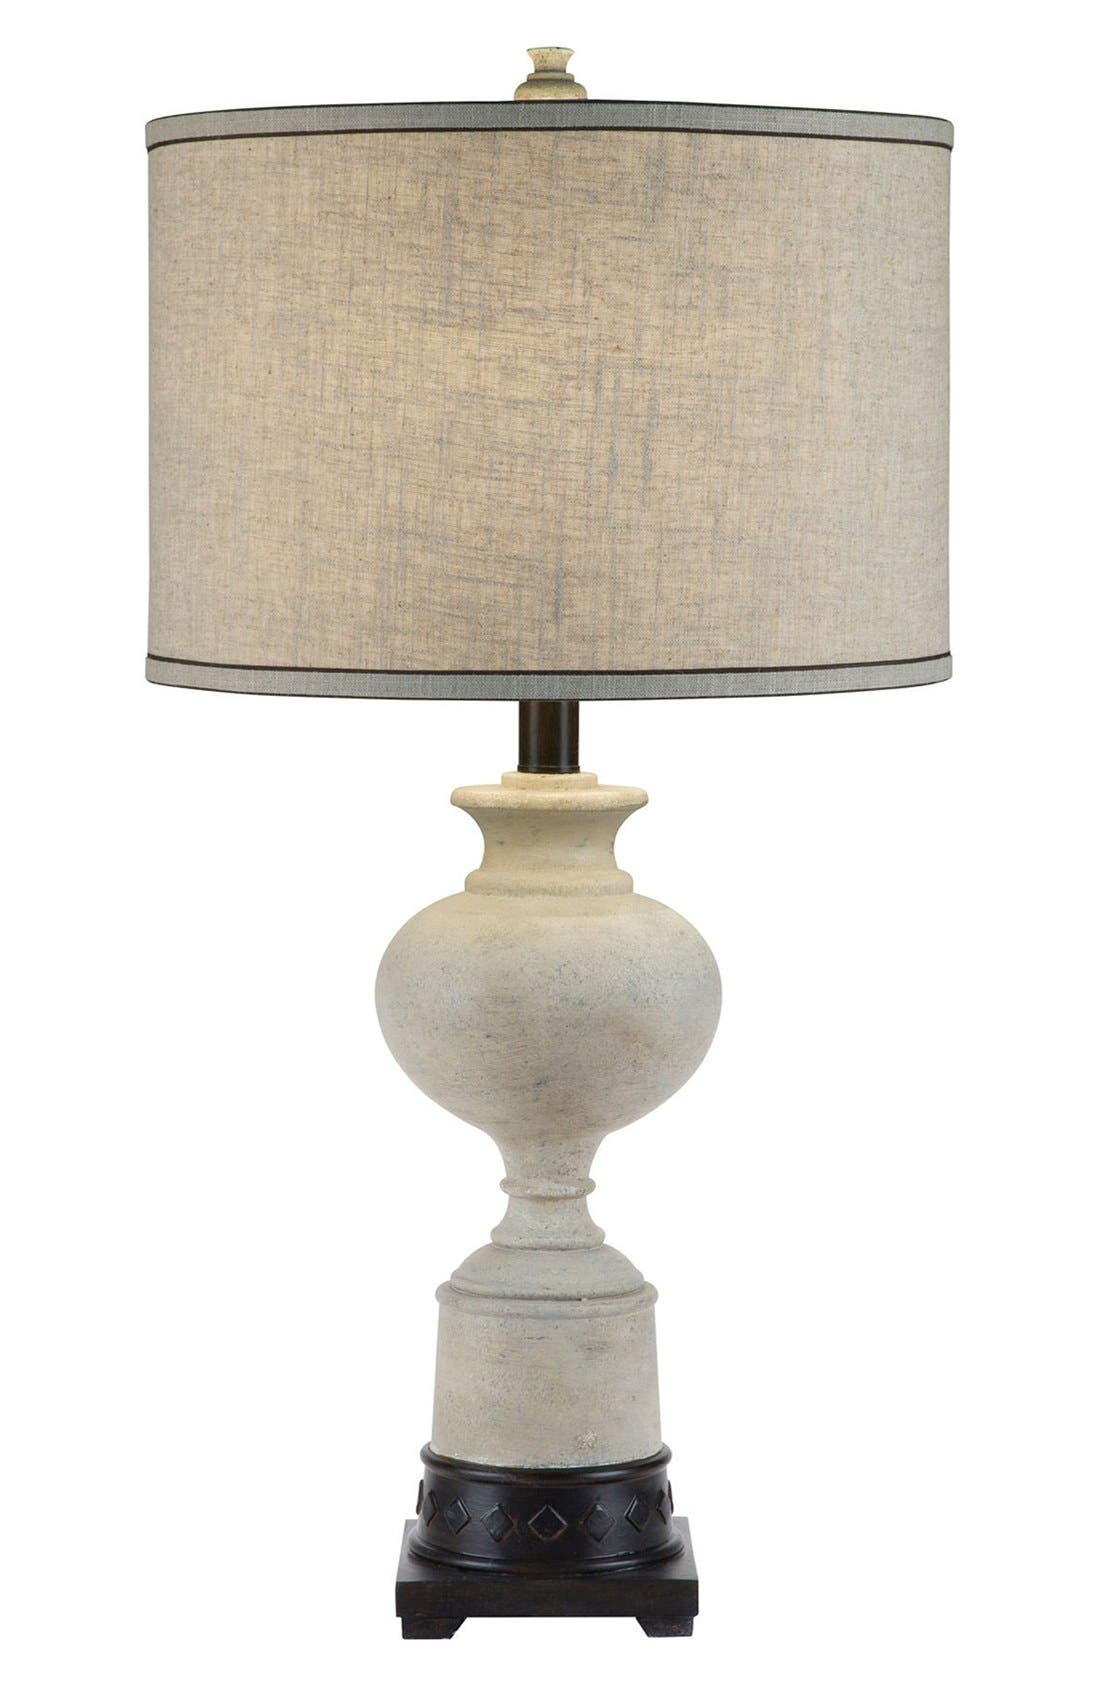 JAlexander 'Trophy' Whitewash Table Lamp,                             Main thumbnail 1, color,                             001